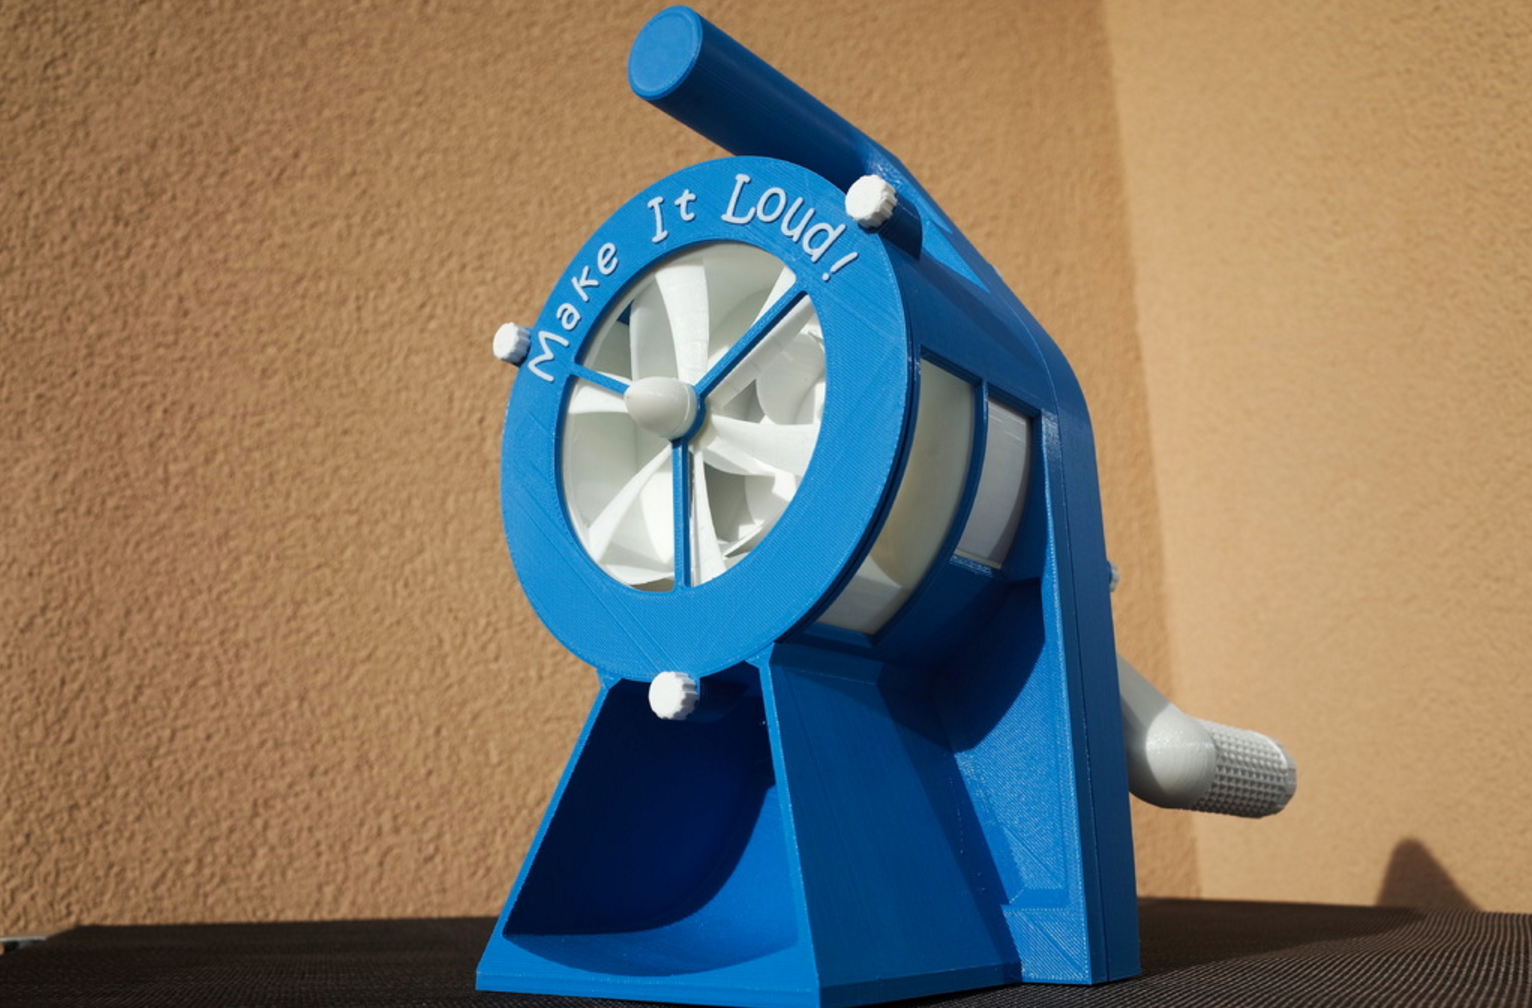 3D Print Your Own Air Raid Siren